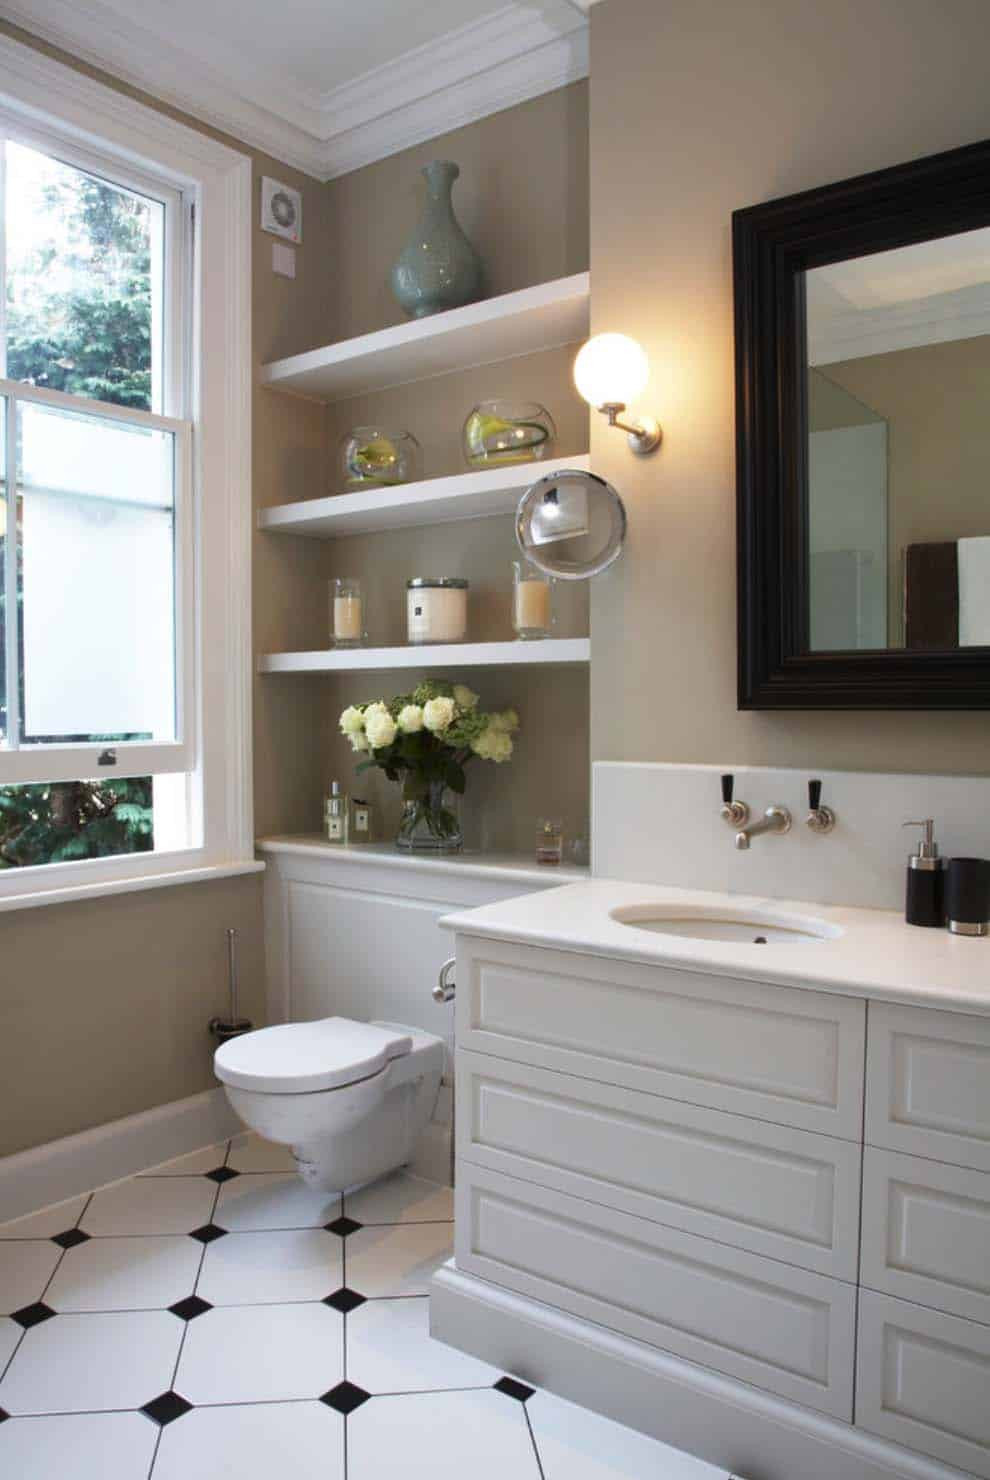 Best ideas about Small Bathroom Plans . Save or Pin 53 Most fabulous traditional style bathroom designs ever Now.